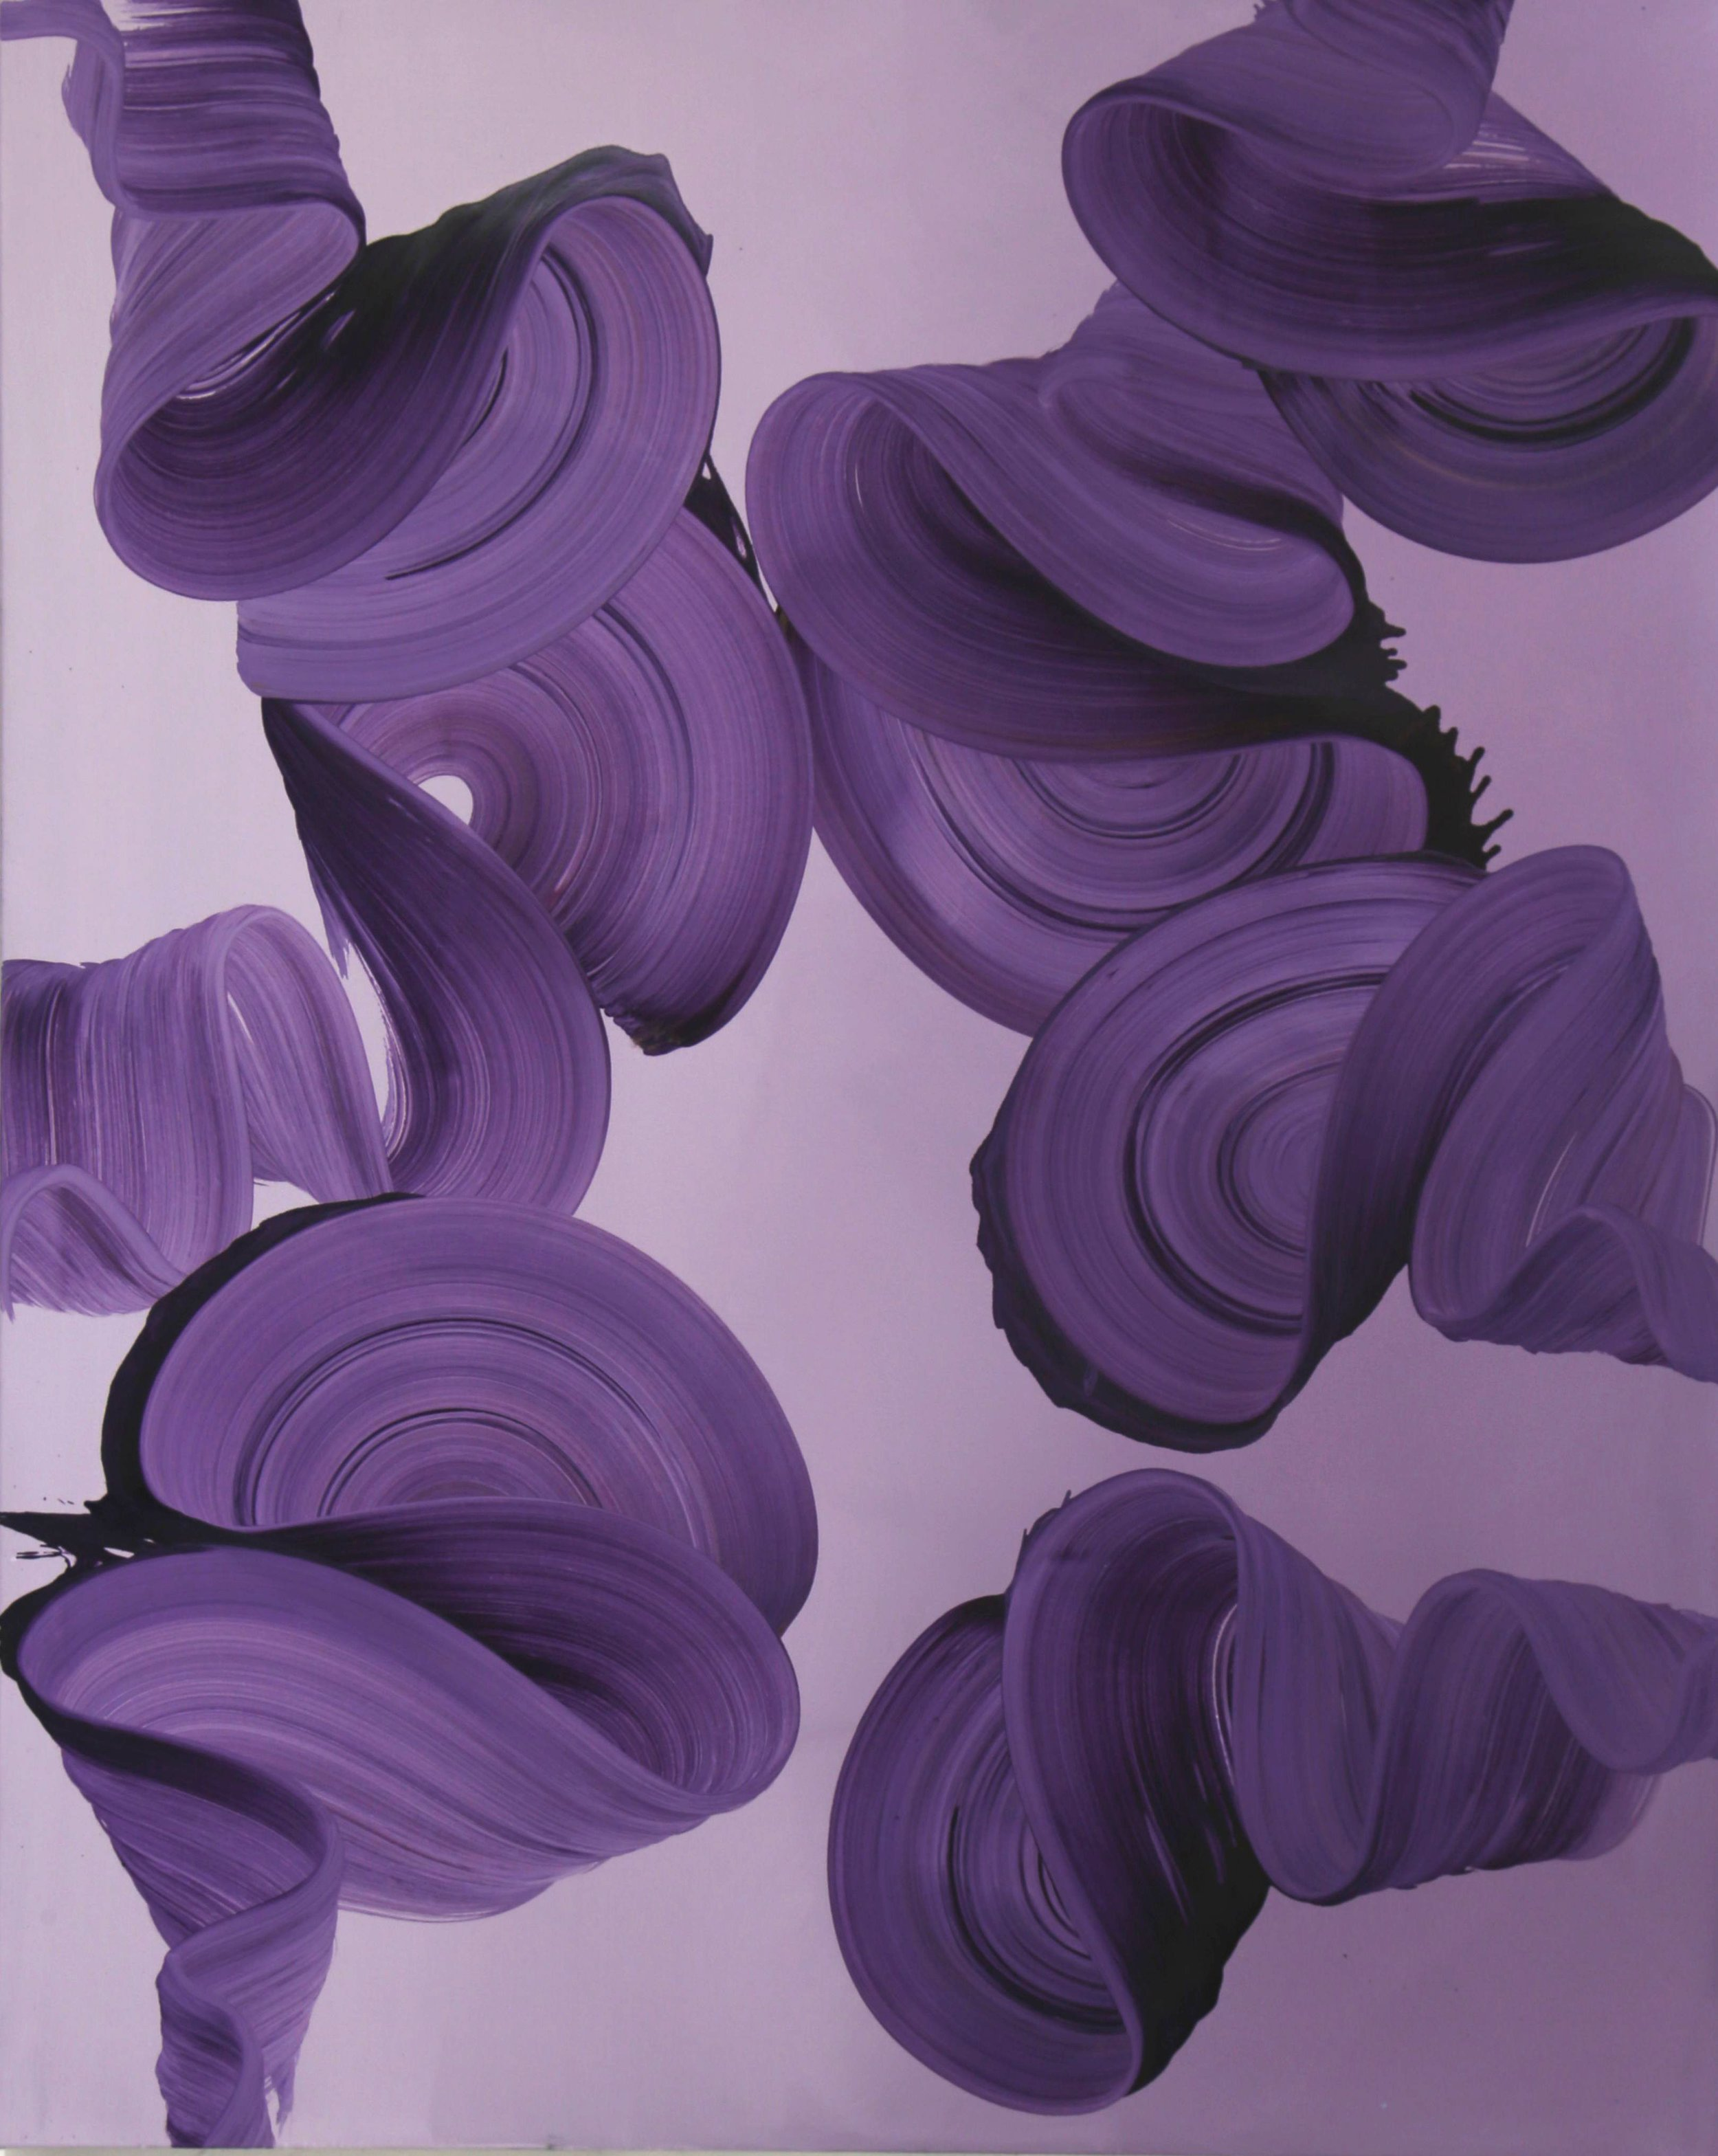 Purple Swirls  60 x 48 in